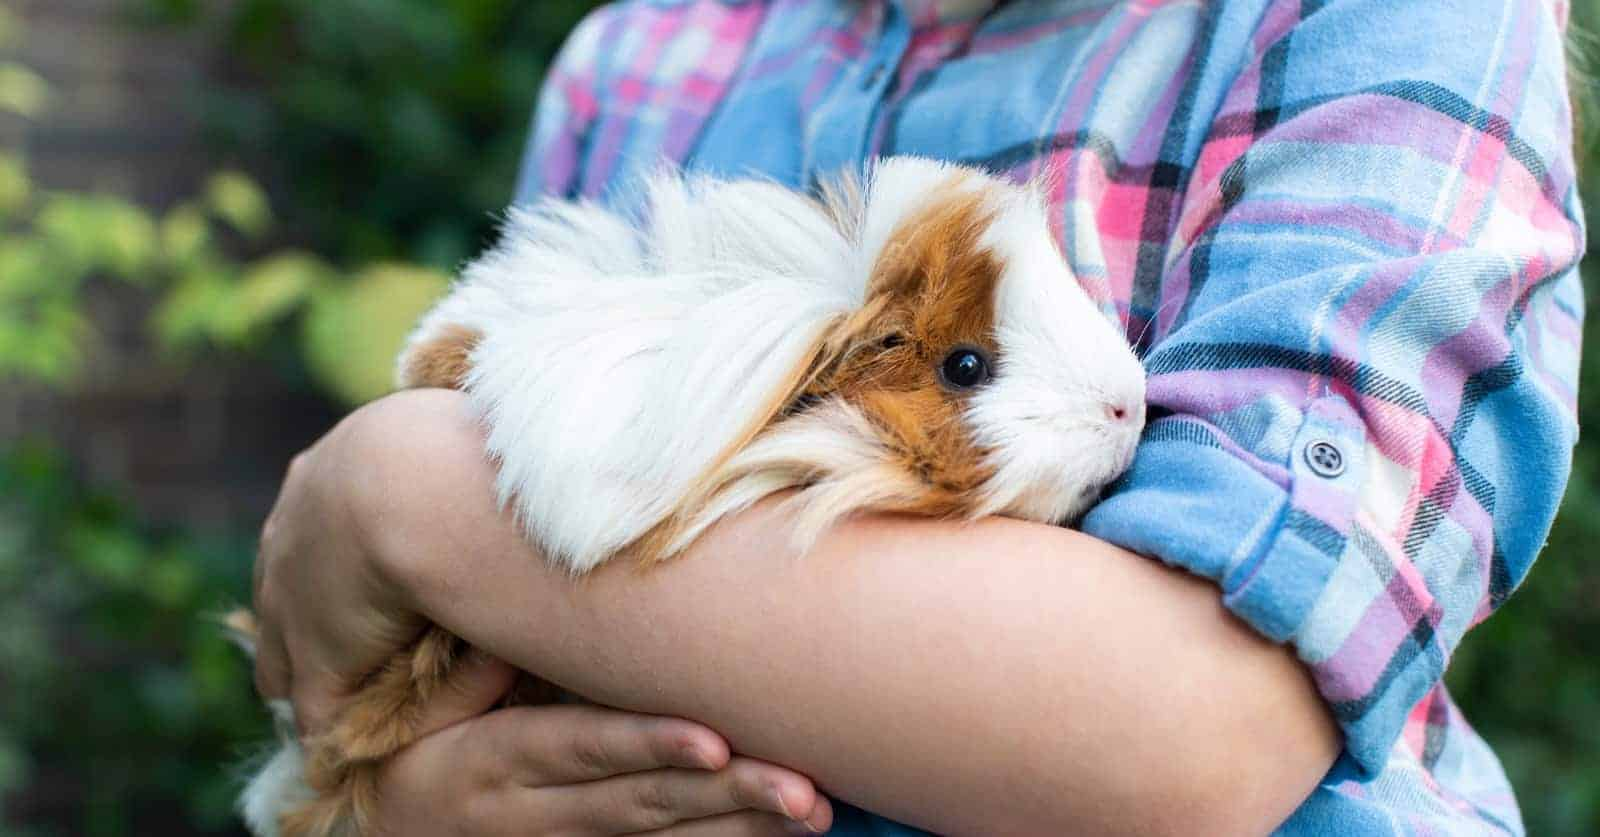 Are guinea pigs affectionate towards their owners? Find out the complete answer, along with signs your cavy loves you and how to build trust!